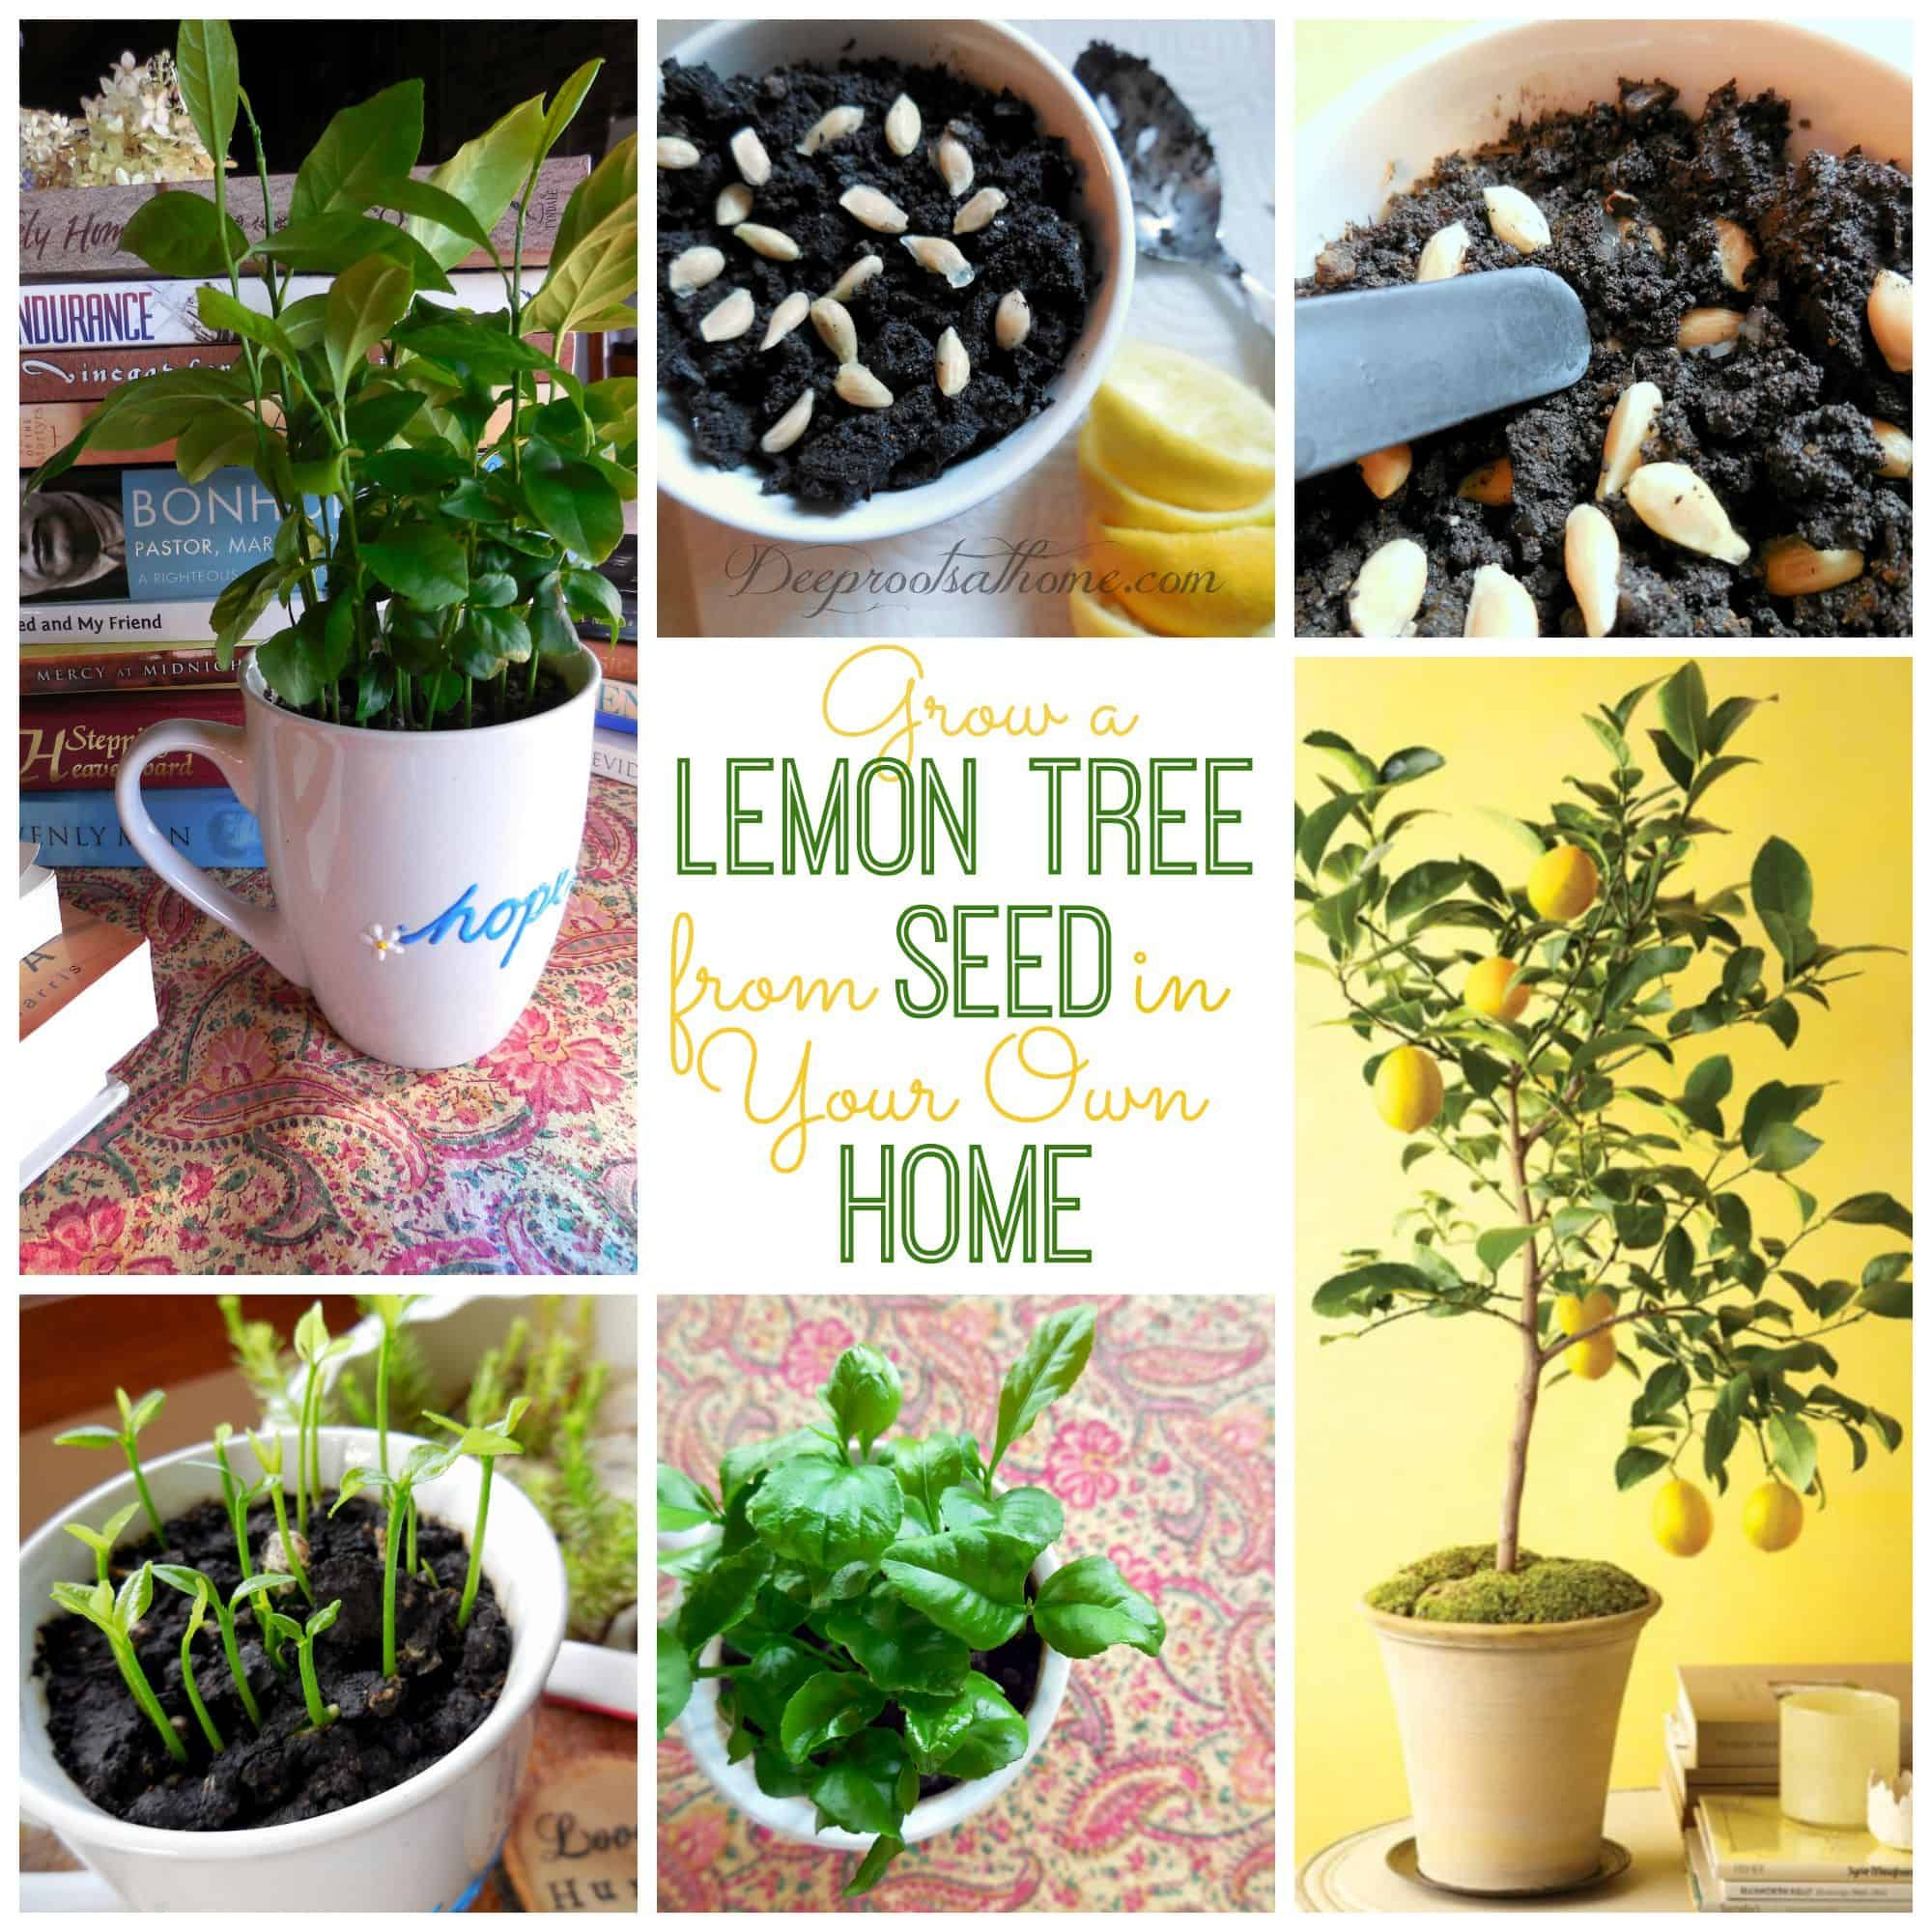 Grow A Lemon Tree From Seed In Your Own Home Lemon Tree From